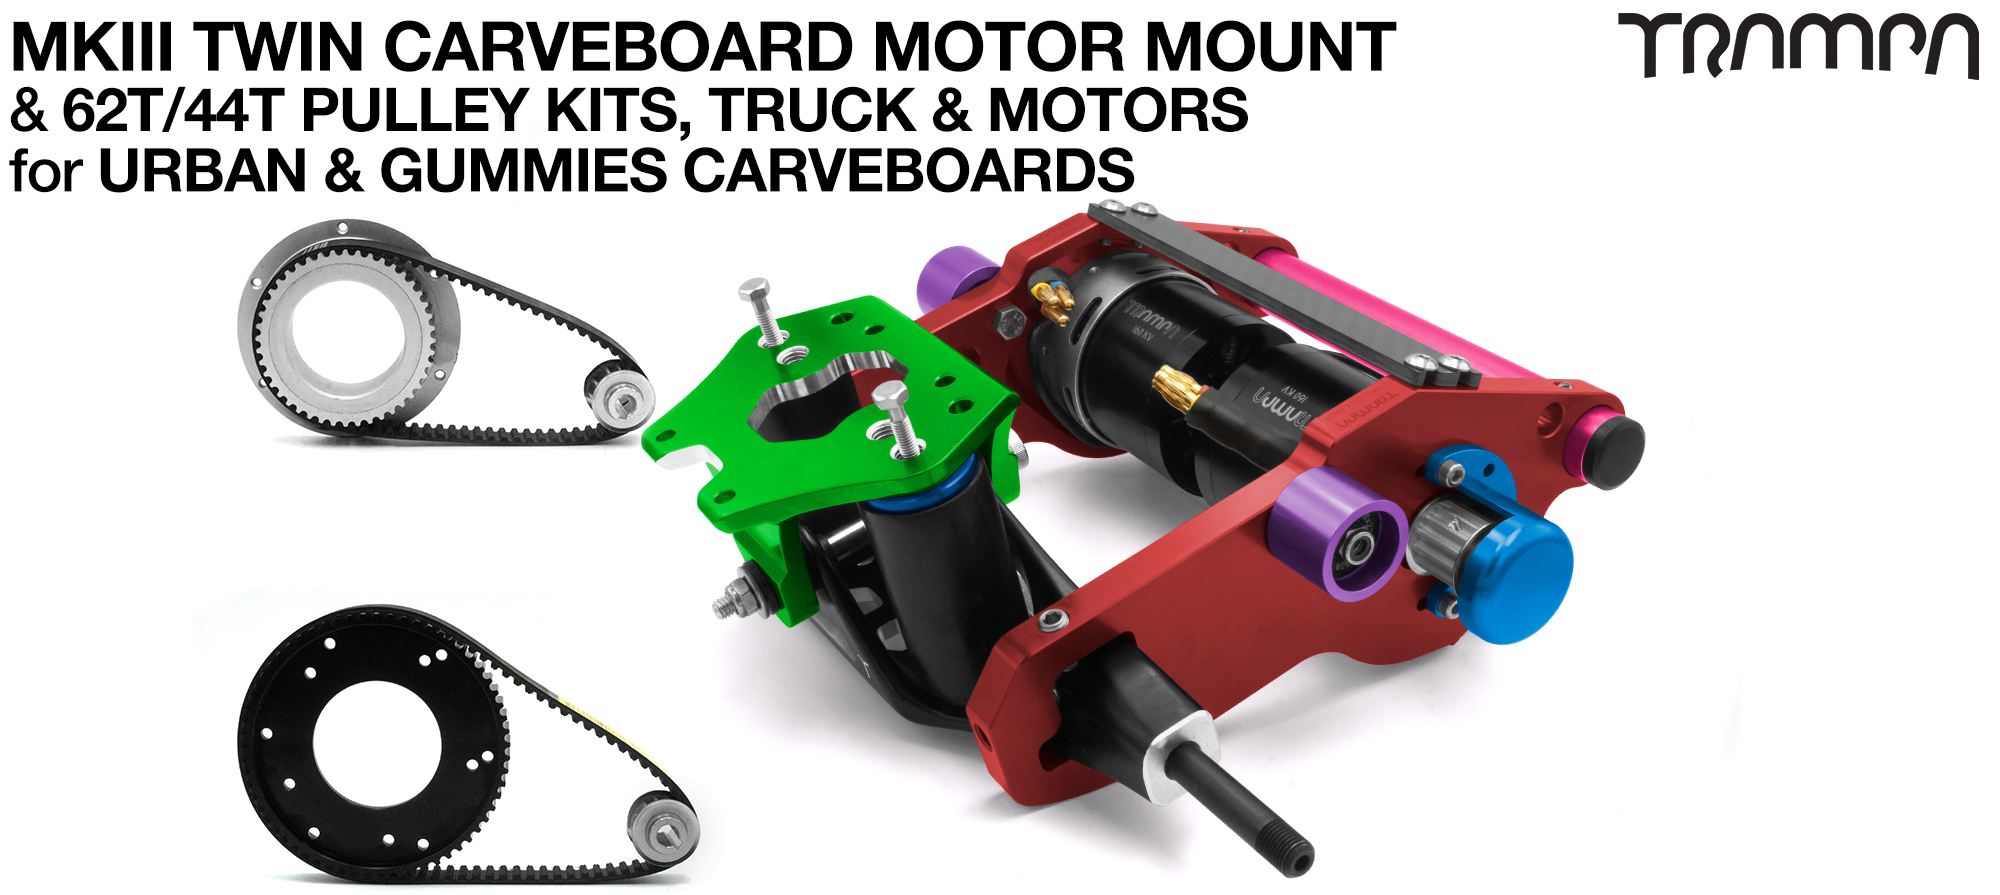 MkIII 2in1 CARVEBOARD Motormount on a TRUCK with 44 tooth GUMMIES & 62 tooth URBAN Pulley kits & TRAMPA Motor - TWIN